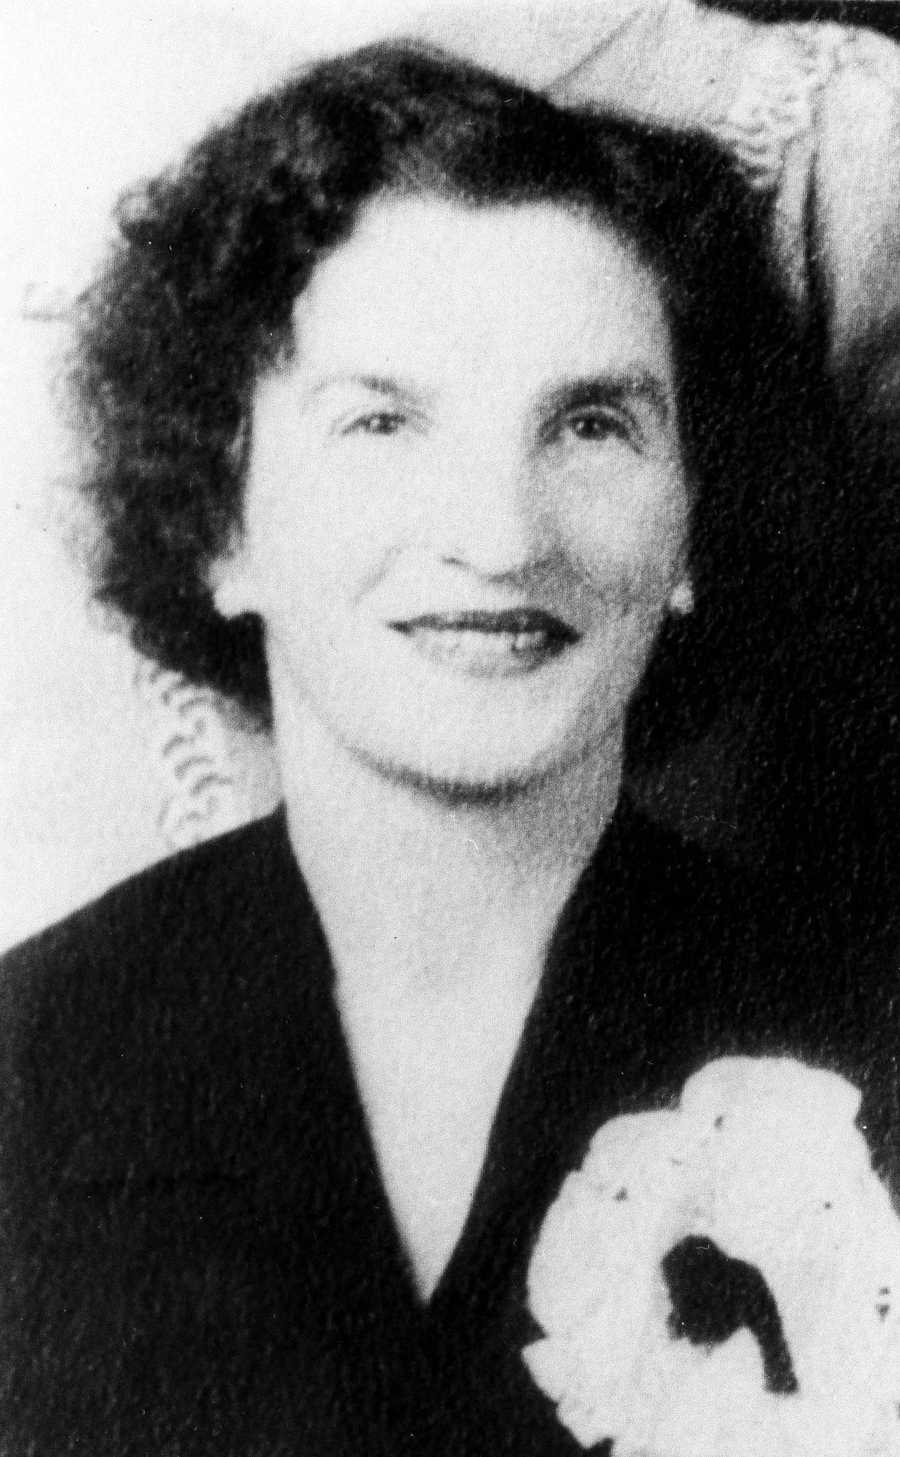 Mrs. Goldie Fine, 63, was found strangled with a stocking in the bedroom of her Norwood, Mass. home, April 13, 1964. She was the 12th victim of unsolved strangling's of women in eastern Massachusetts in less than 2 years.